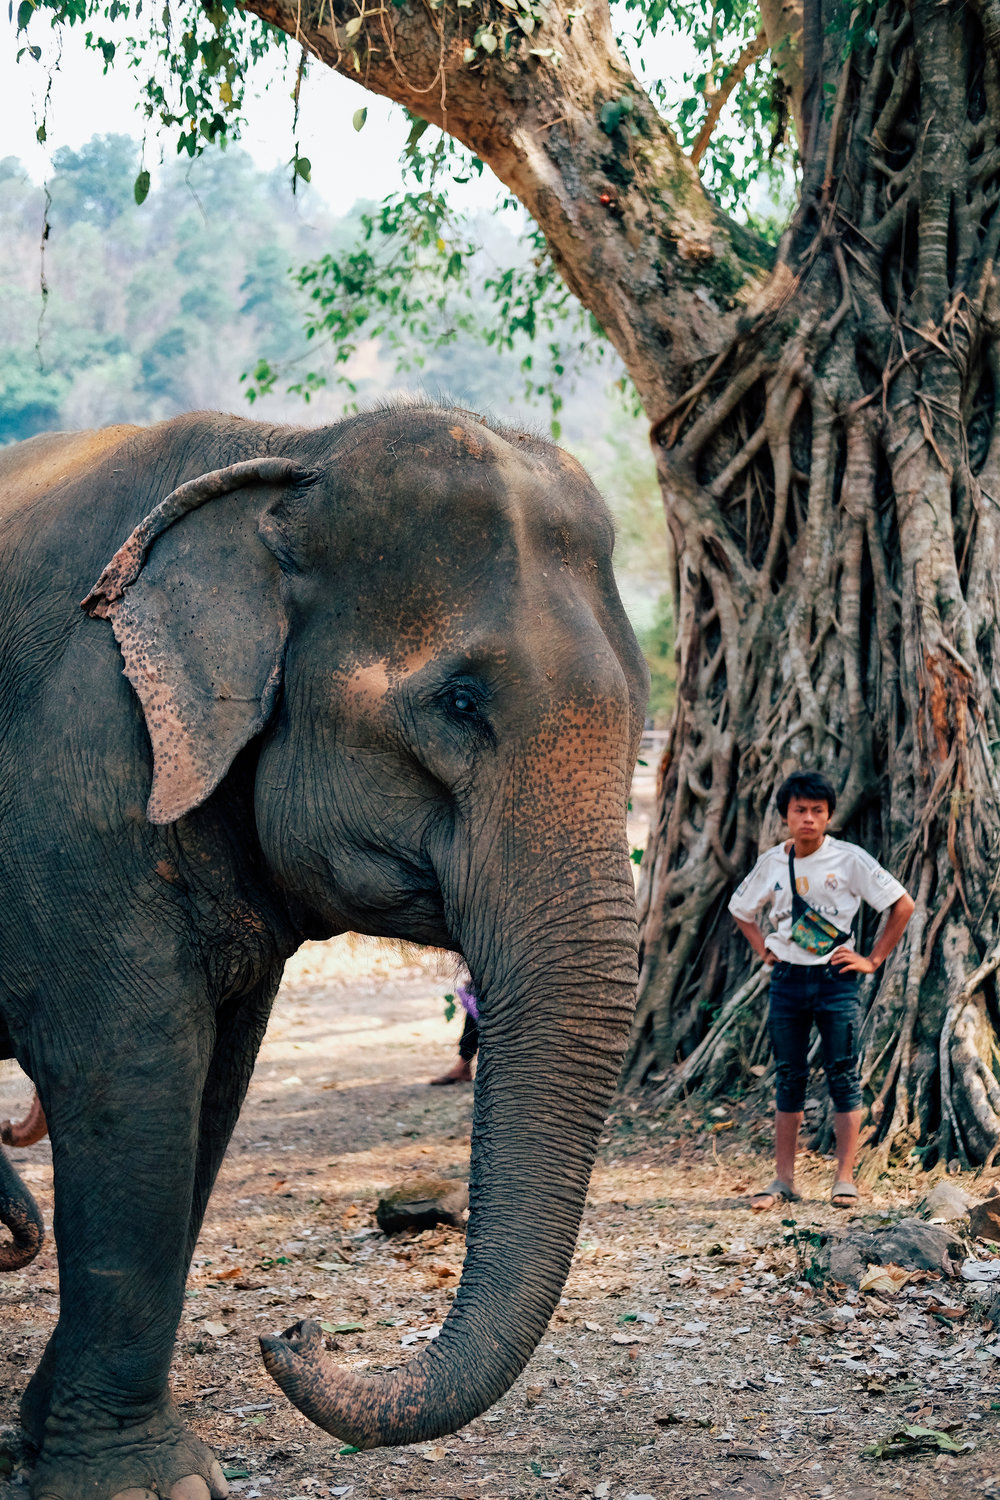 An elephant and volunteer at the Elephant Nature Park